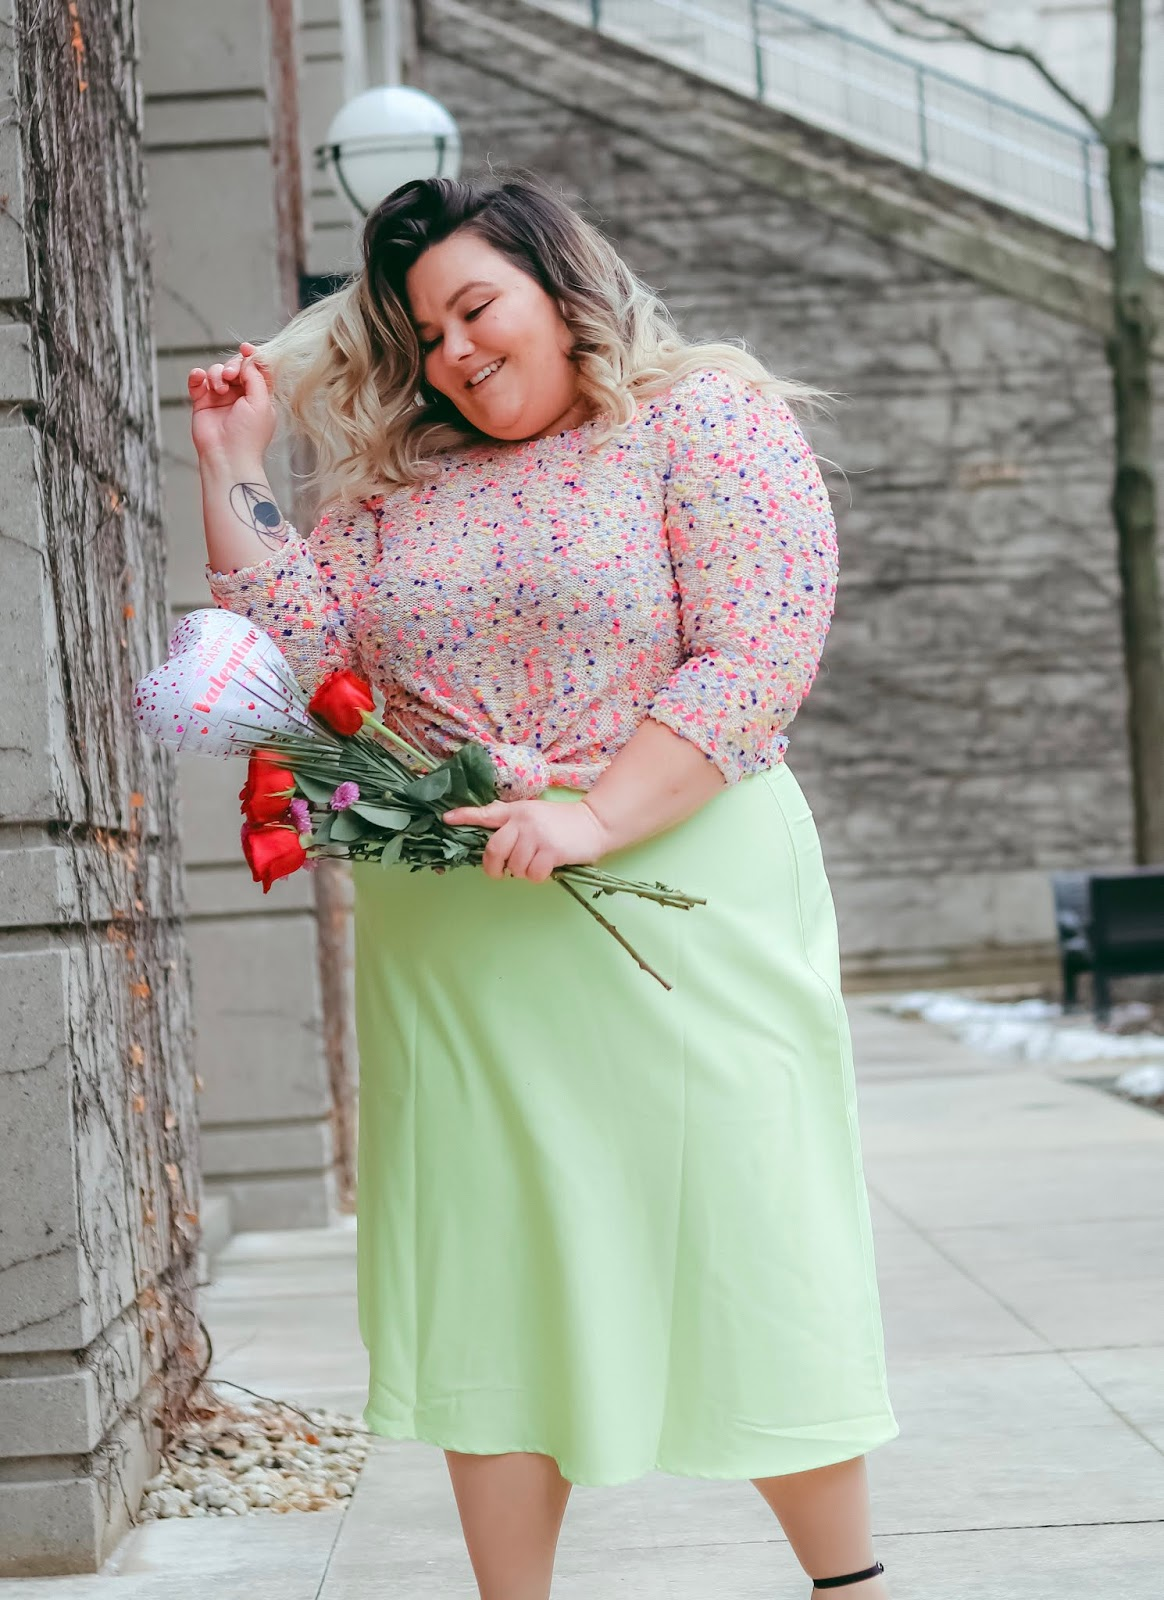 Chicago Plus Size Petite Fashion Blogger, influencer, YouTuber, and model Natalie Craig, of Natalie in the City, reviews Eloquii's satin midi slip skirt and Gordmans' sweaters.